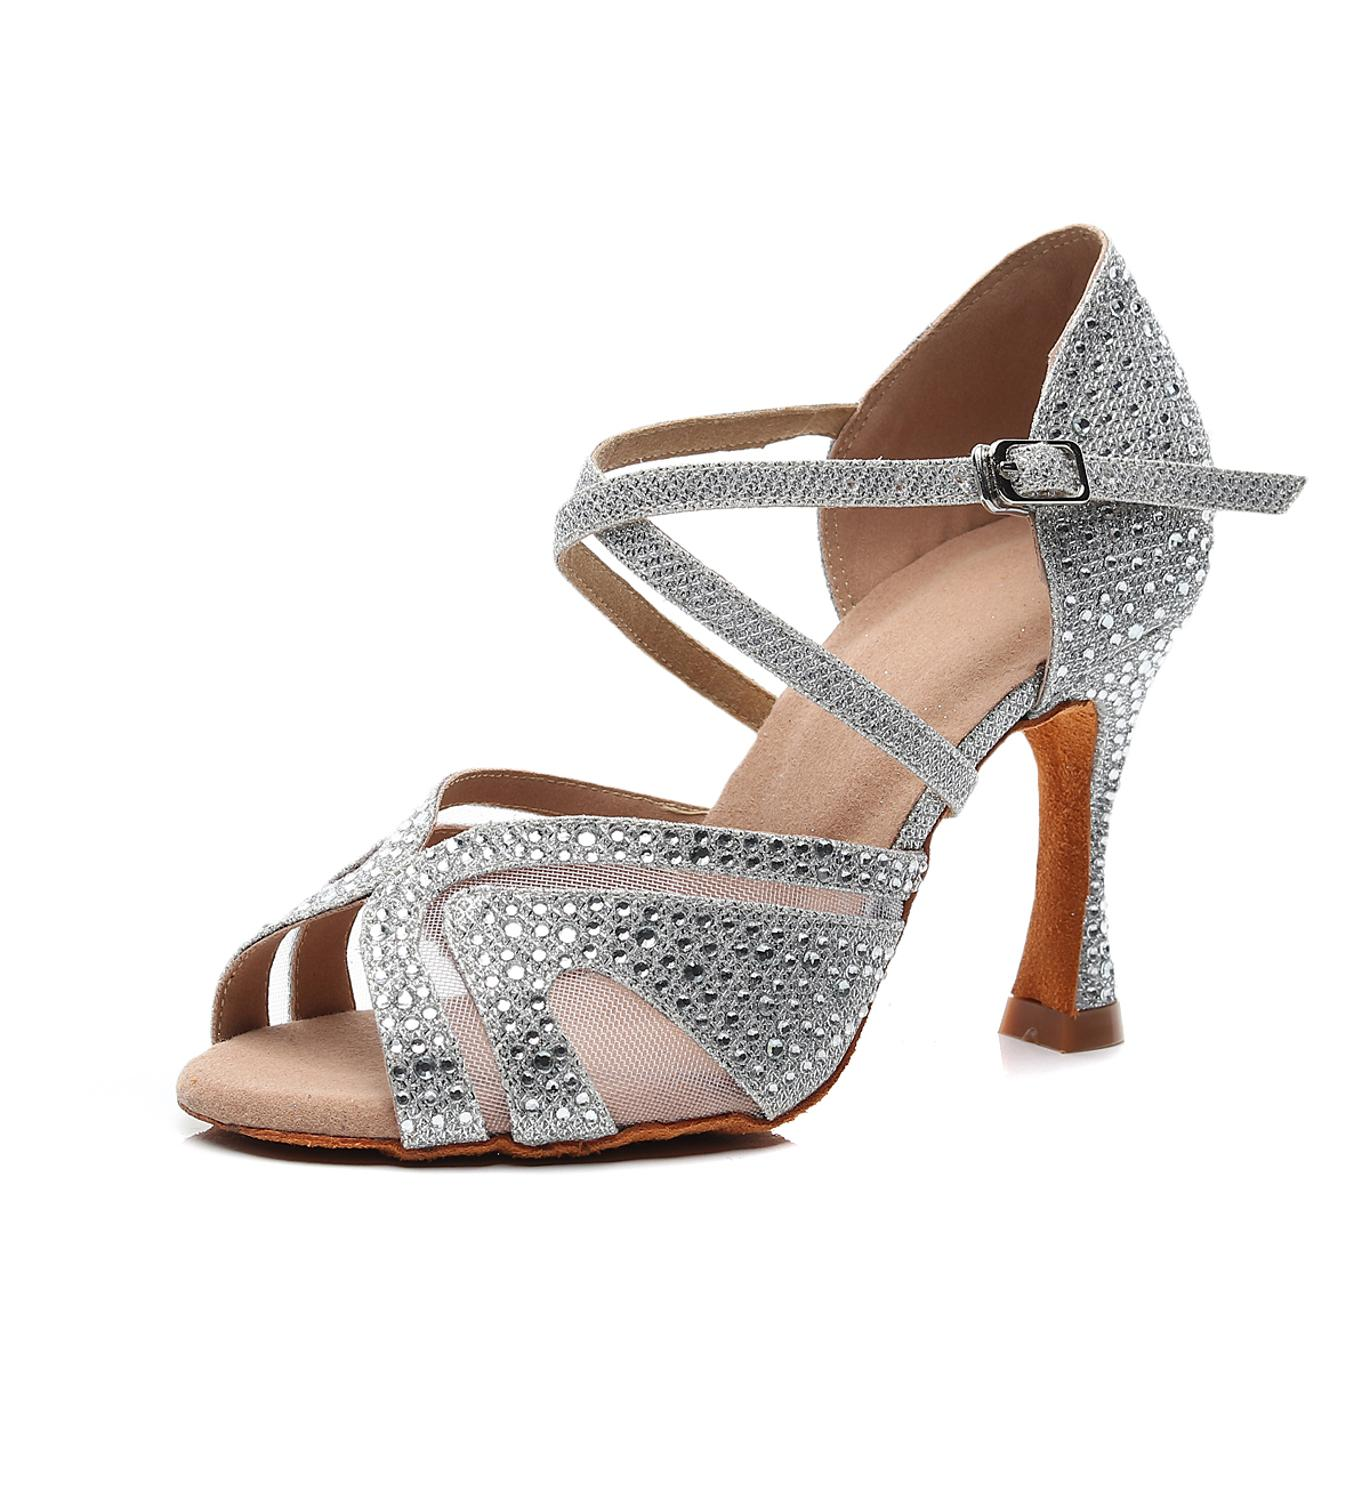 Fashion Jazz Salsa Ballroom Latin Dance Shoes For Dancing Women Chinese Dances High Heels Rhinestone Sequined Summer Sandals